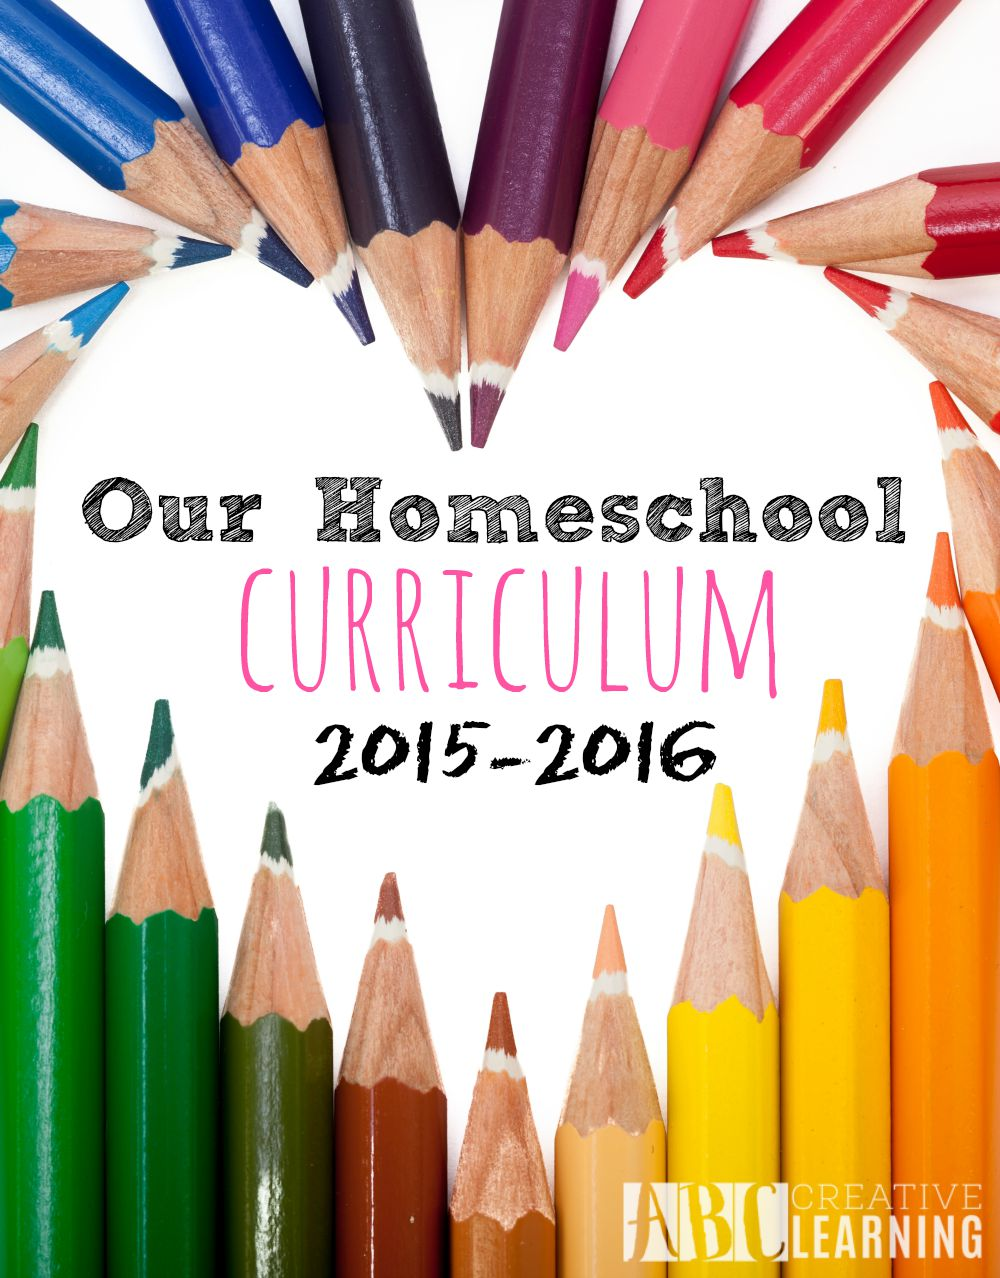 Our Homeschool Curriculum 2015-2016! We can't wait to dig into a year of Preschool and First Grade! - abccreativelearning.com